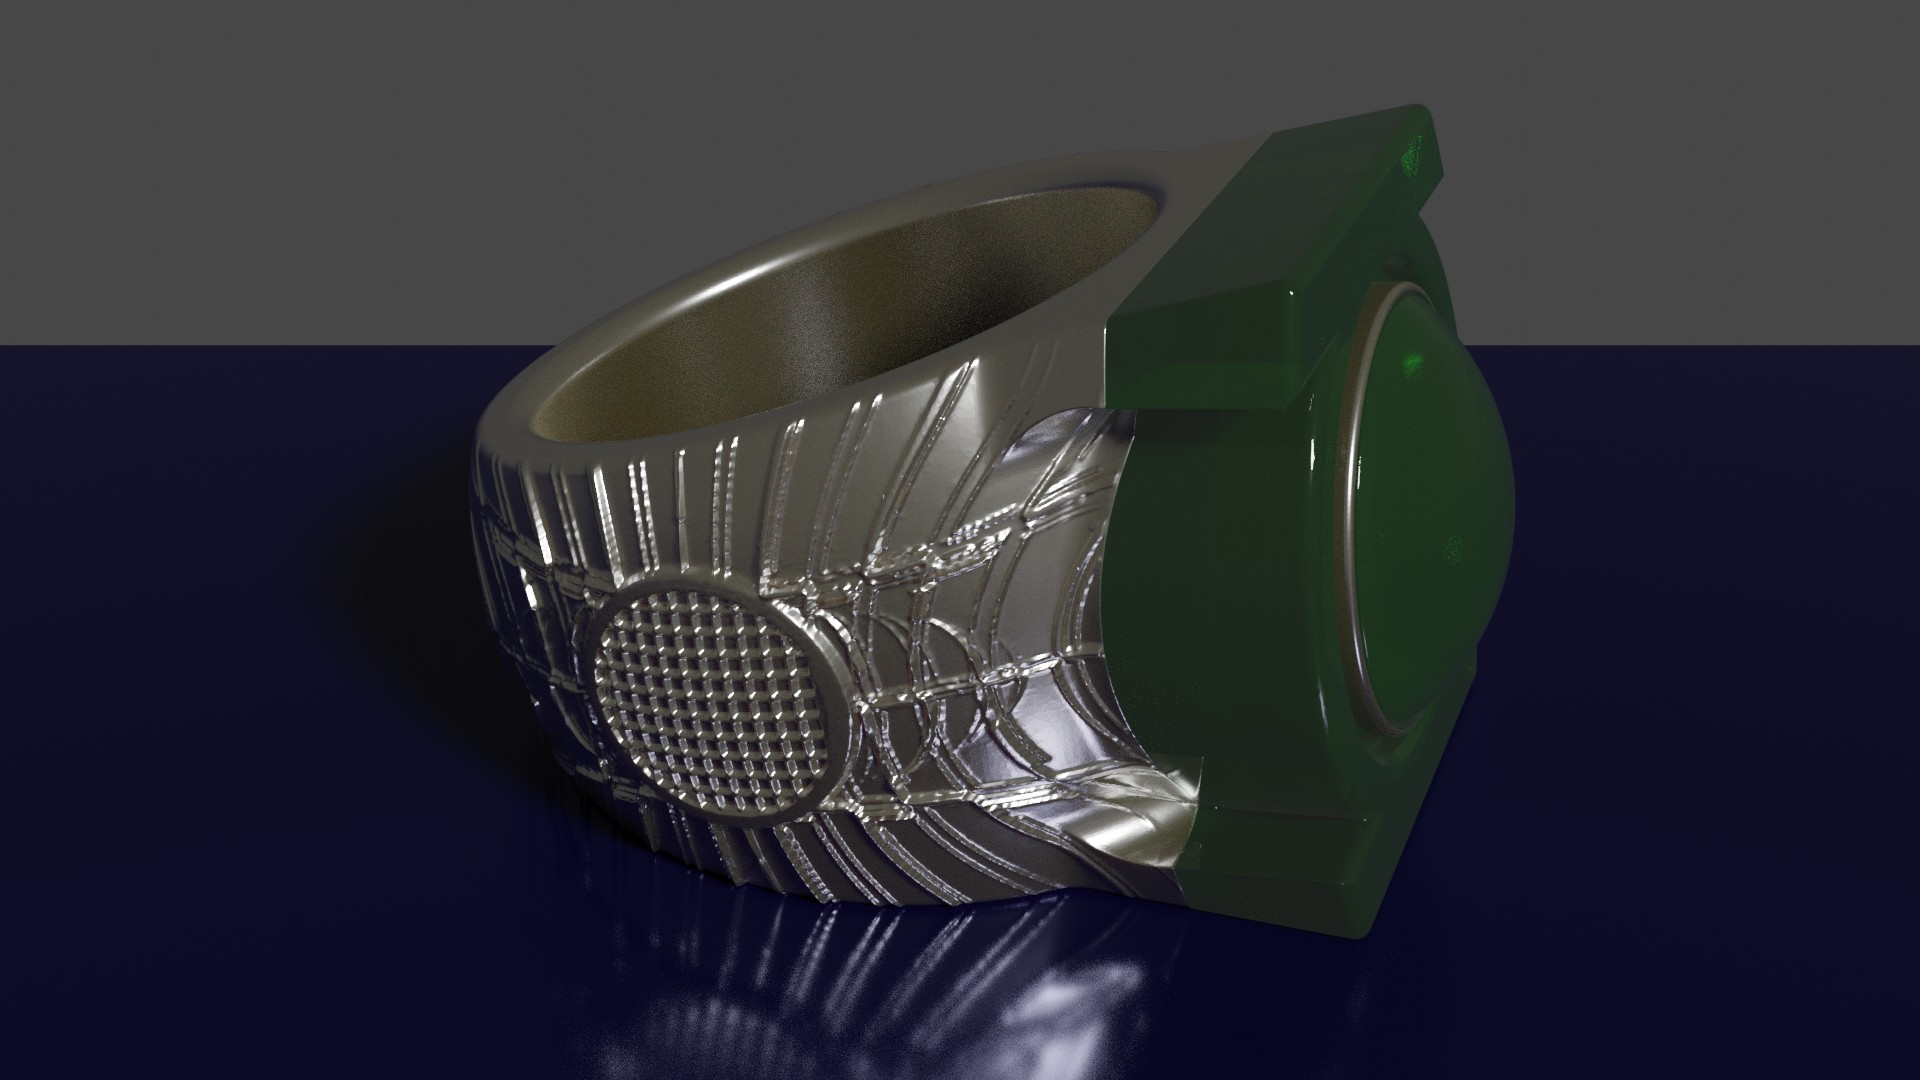 anillo linterna verde render2.jpg Download STL file Green lantern ring • Design to 3D print, rodrigo11o11